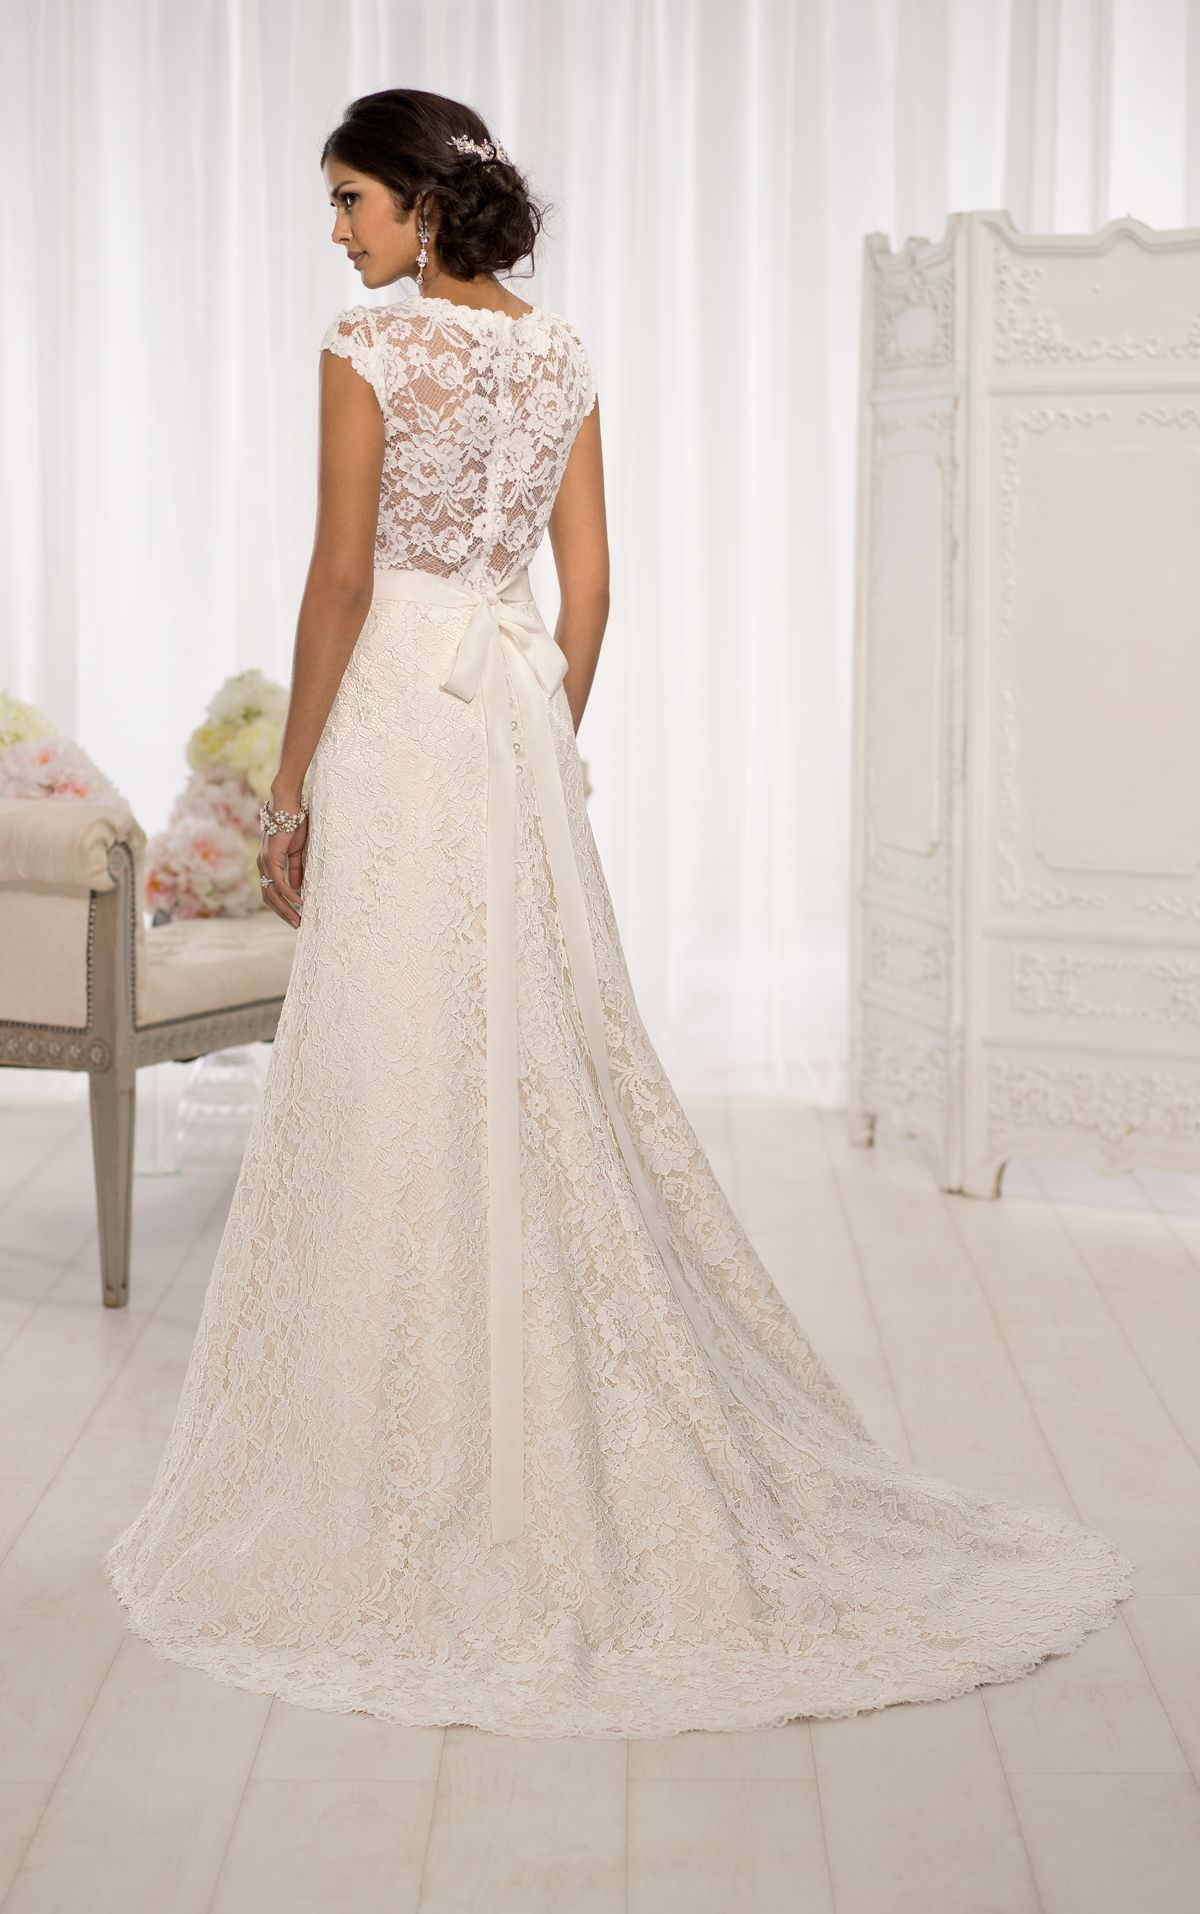 b242a031c1dc Elegant cap sleeve wedding dresses feature a gorgeous Lace over Dolce Satin  A-line silhouette. Exclusive designer cap sleeve wedding dresses by Essense  of ...